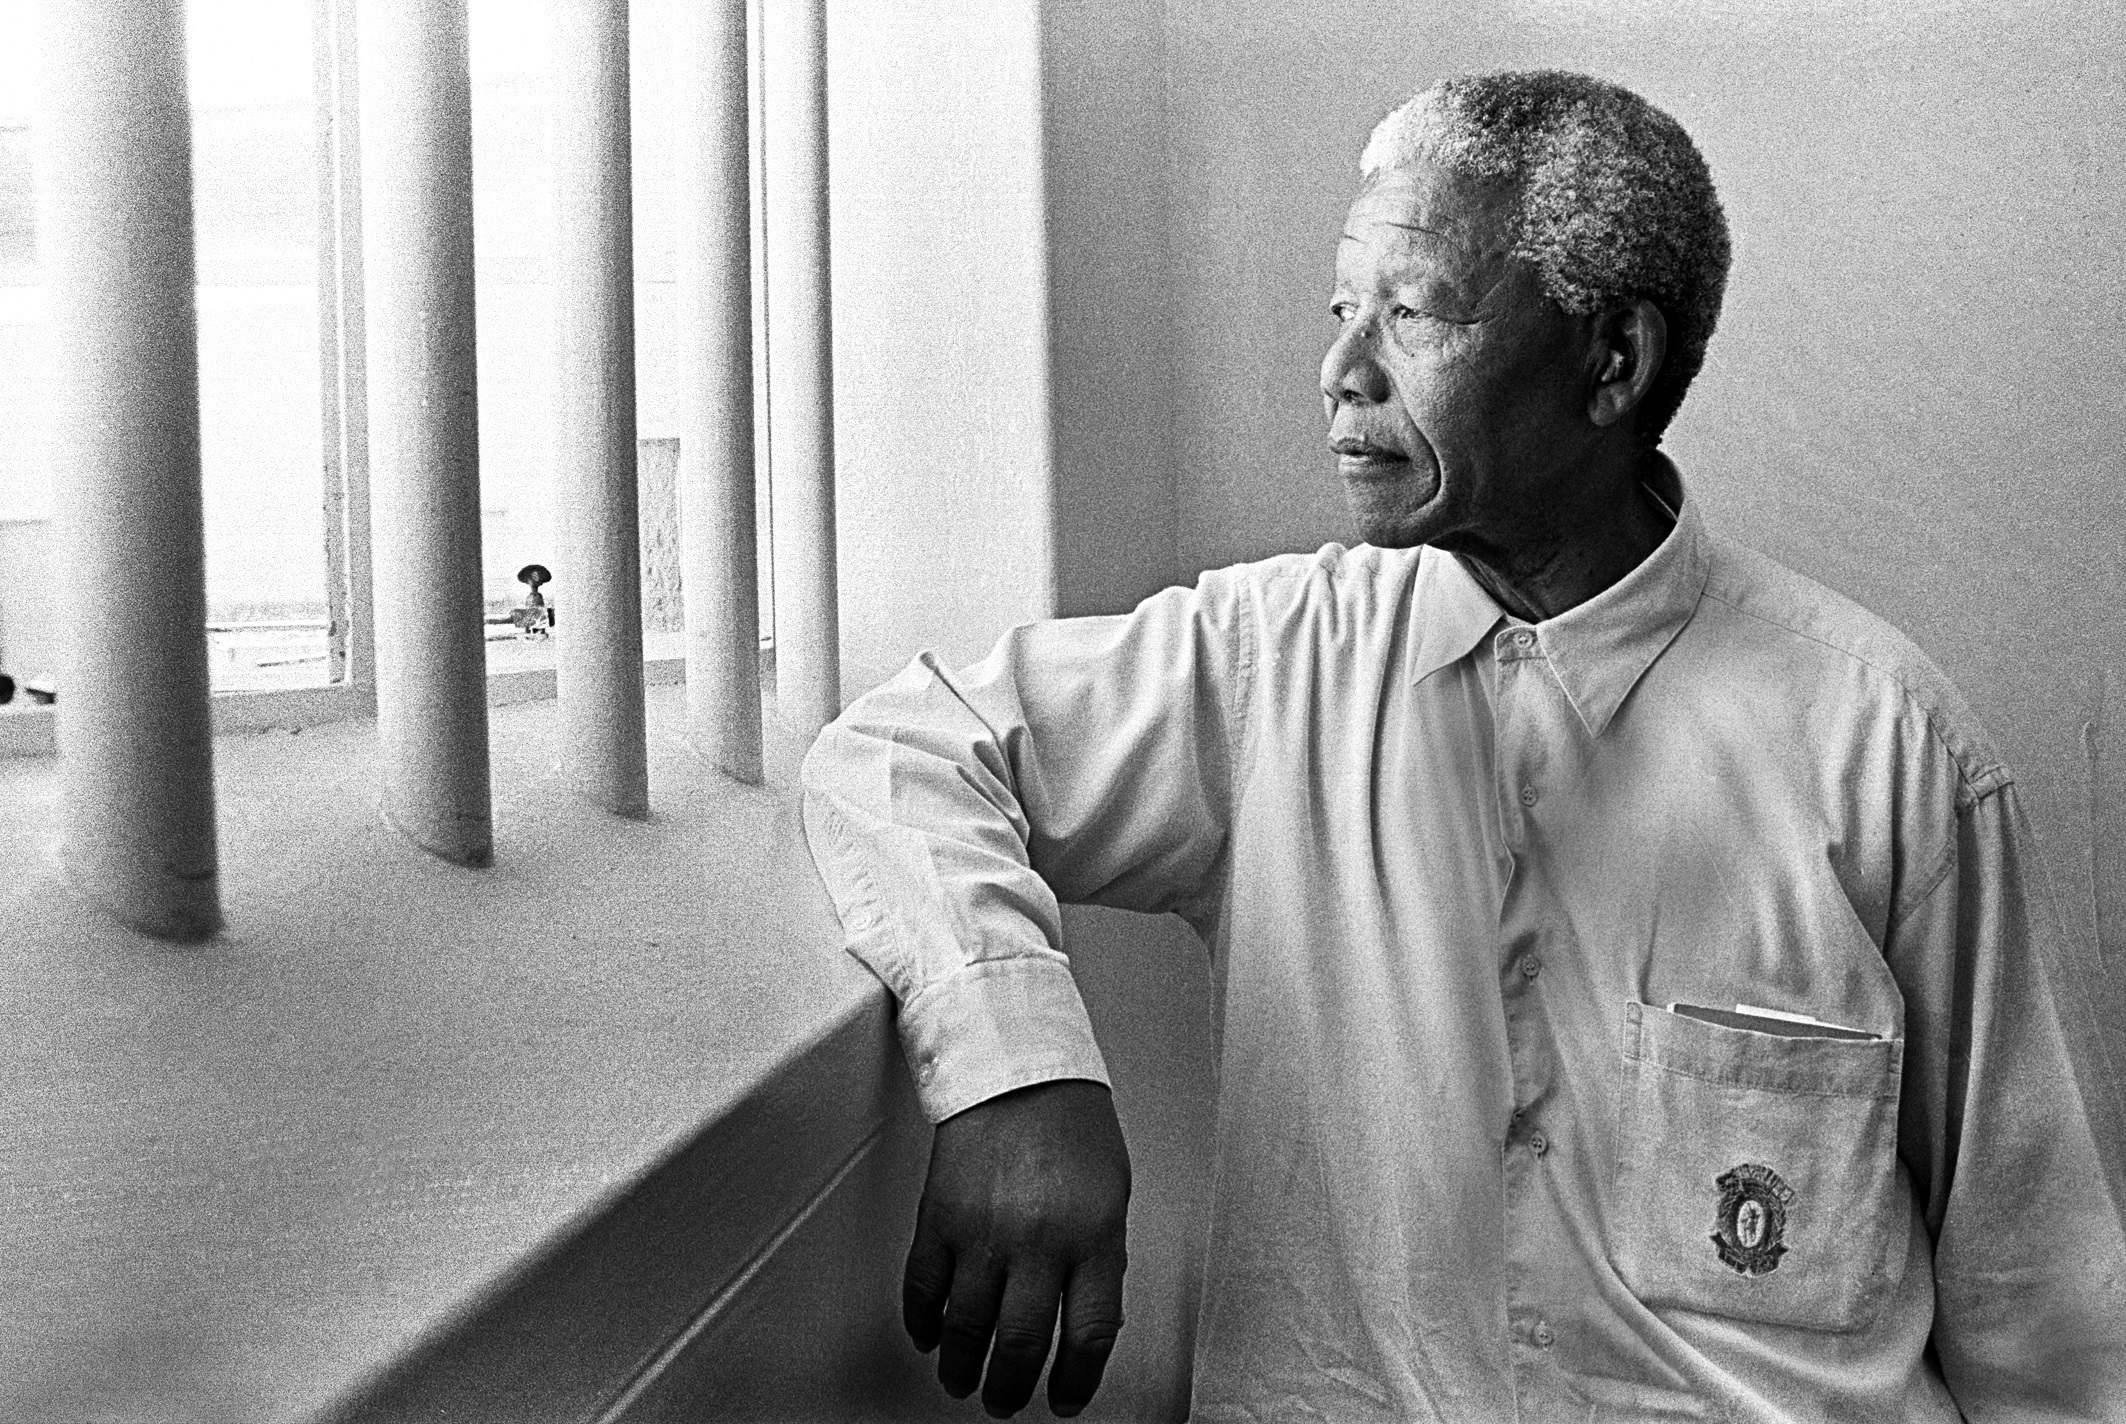 770e5082a Mandela's Life and Times - Black History Month 2019 | Black History ...